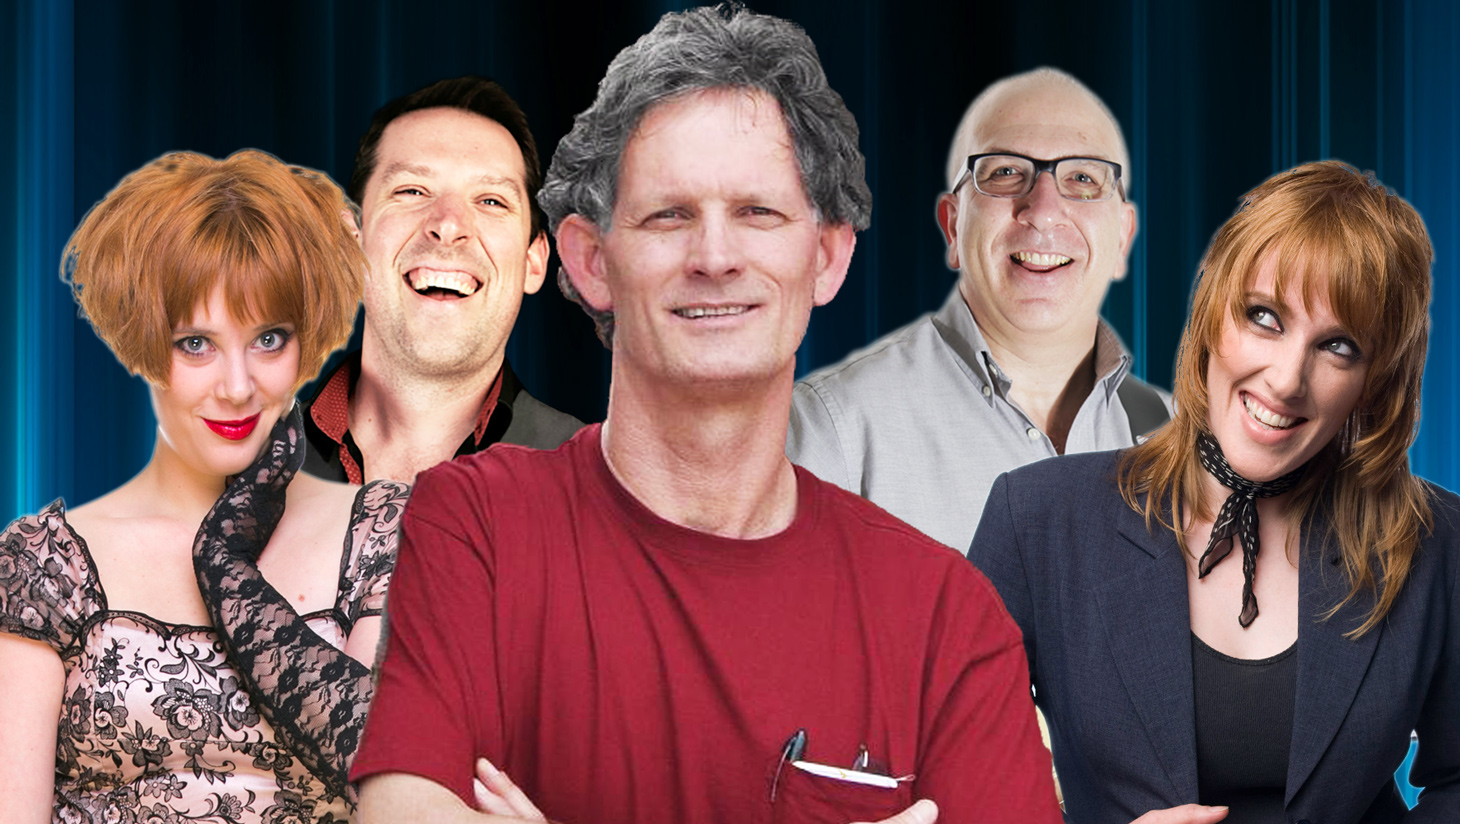 All Star Musical Comedy Showcase with Greg Champion & Friends, On The List, On The List Melbourne